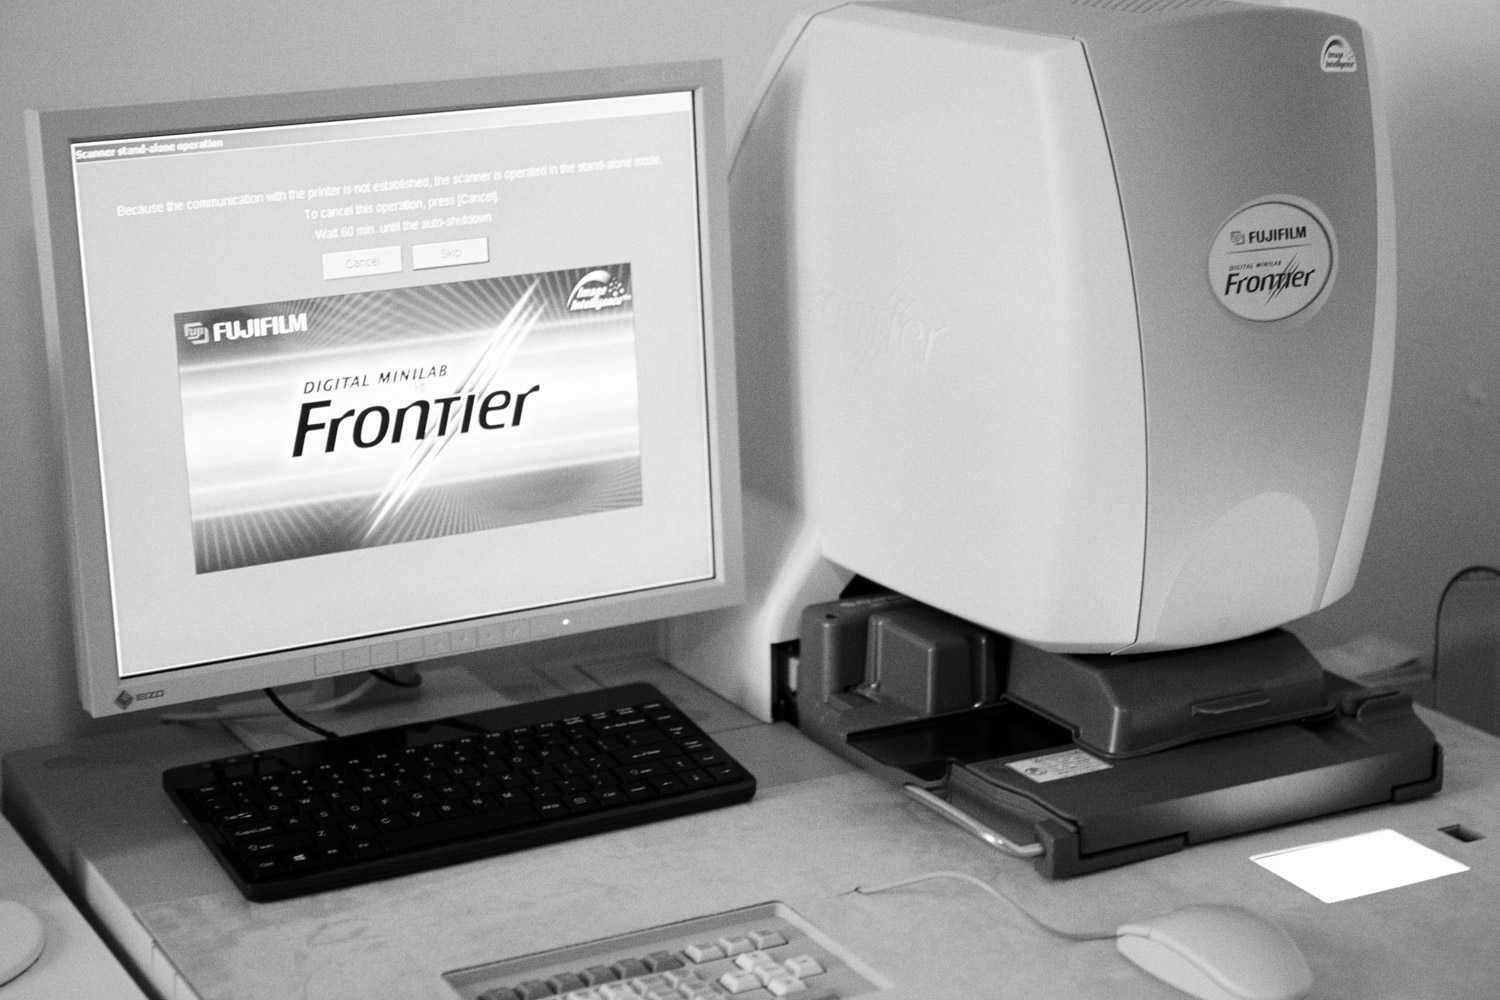 Scanner frontier sp 3000 Lumina film lab laboratorio italiano